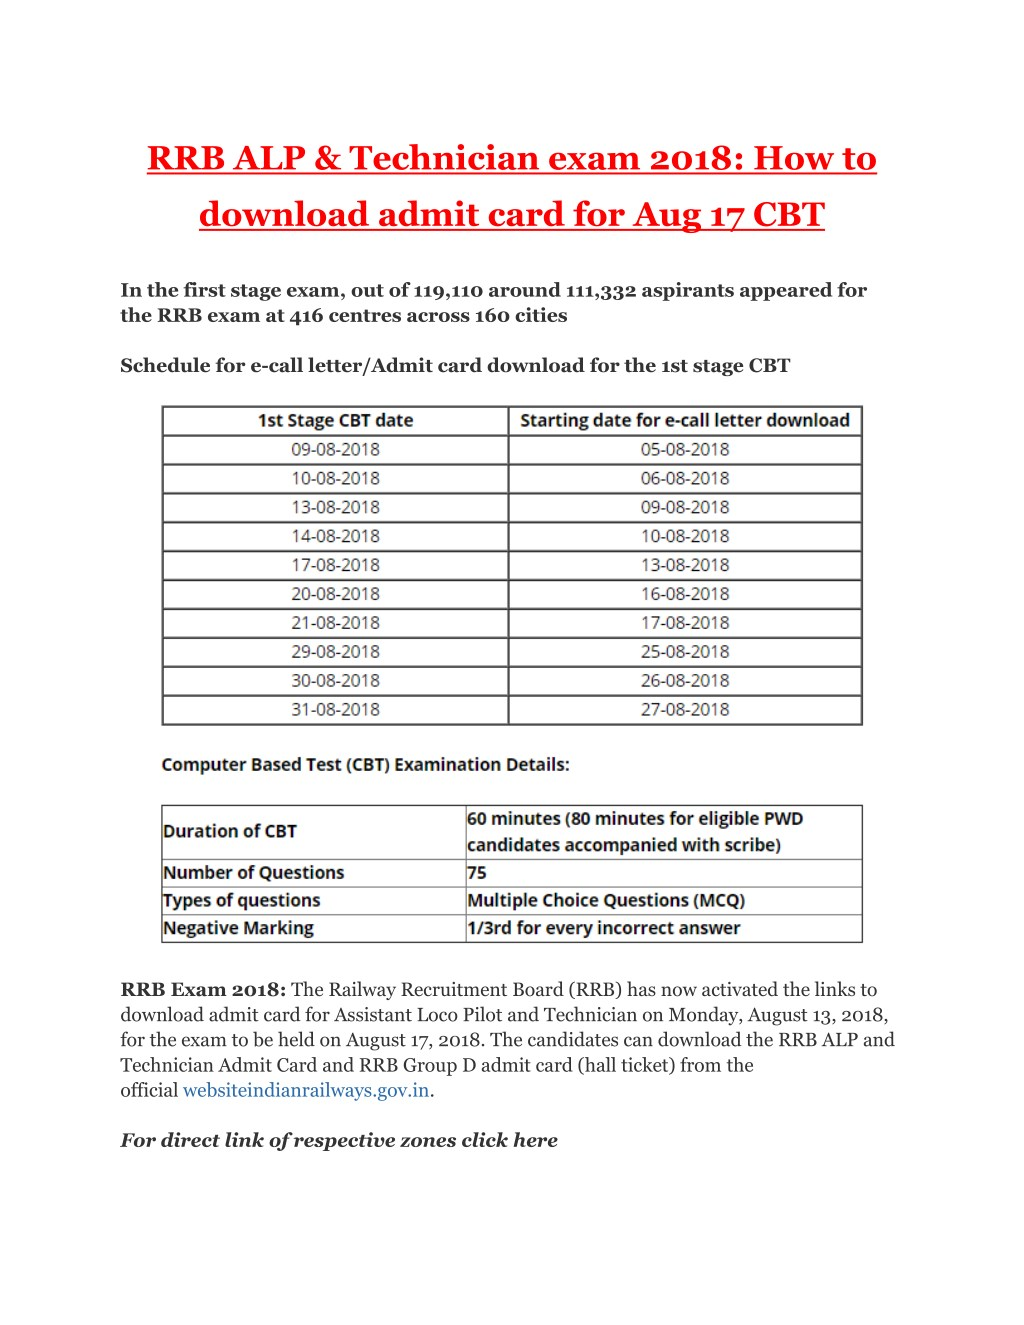 PPT - RRB ALP & Technician exam 2018: How to download admit card for